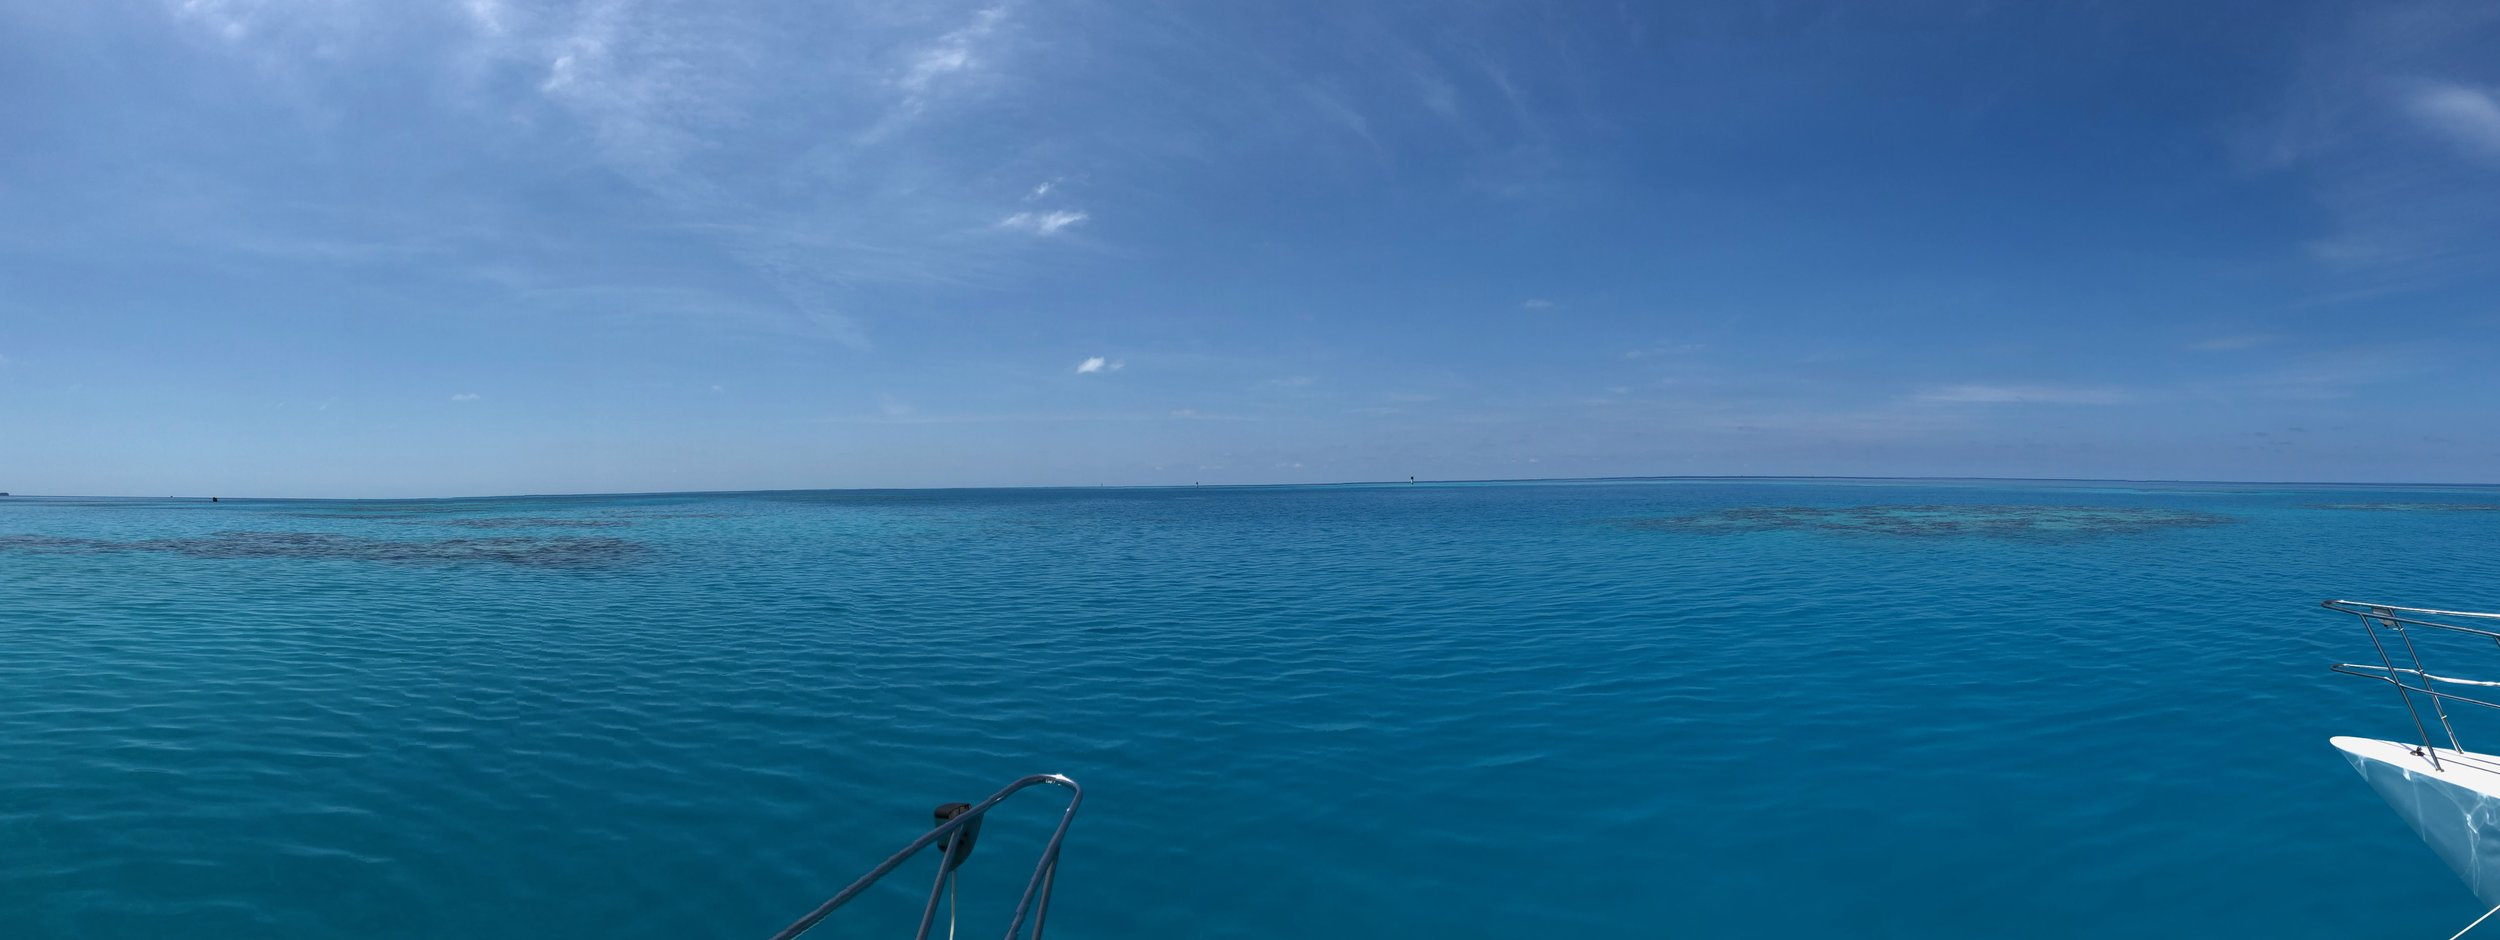 Panorama of the sea over the reef